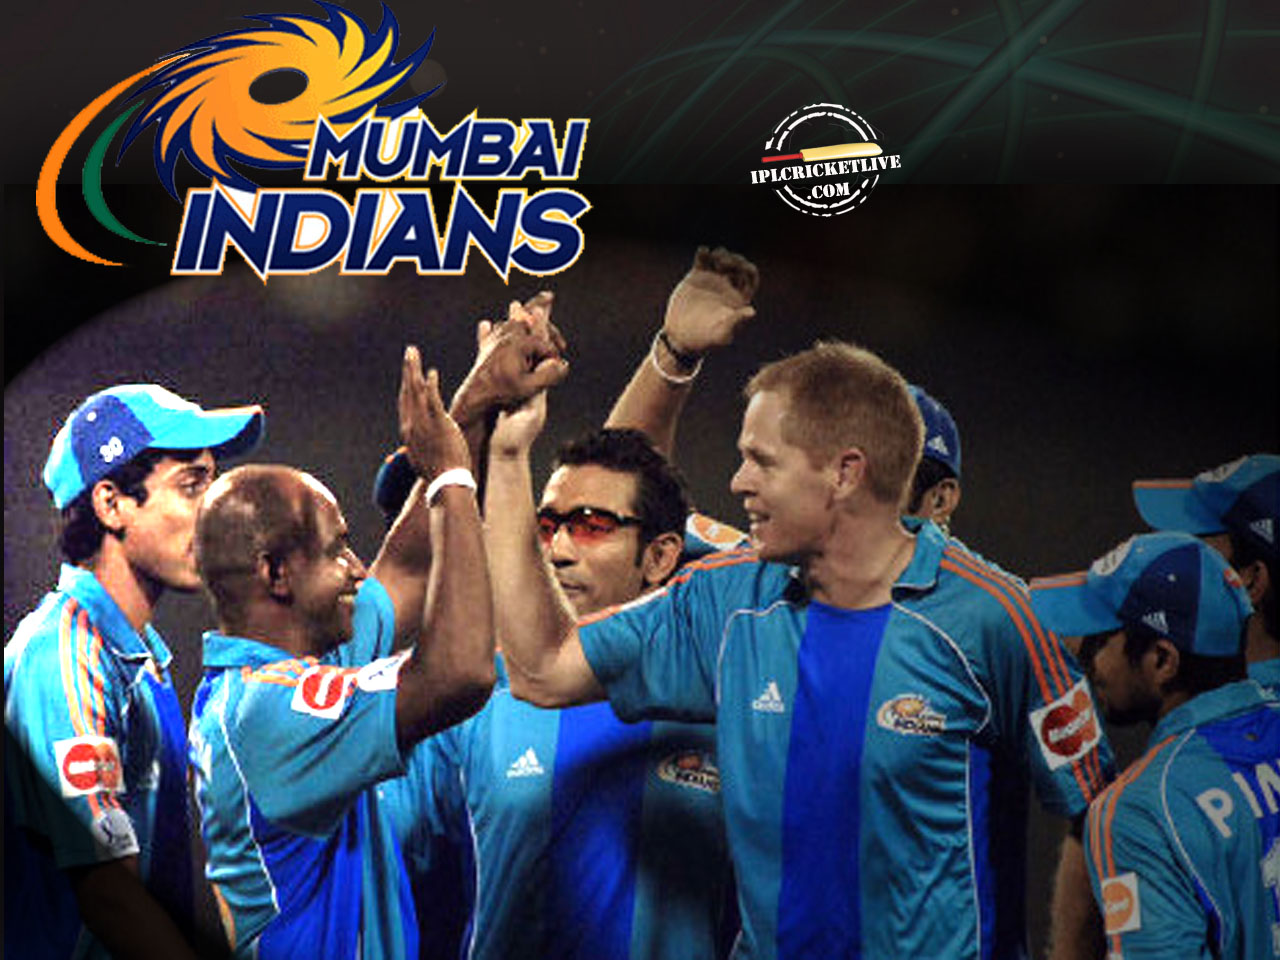 http://sandeepkumar84.files.wordpress.com/2009/12/mumbai-indians-ipl121.jpg